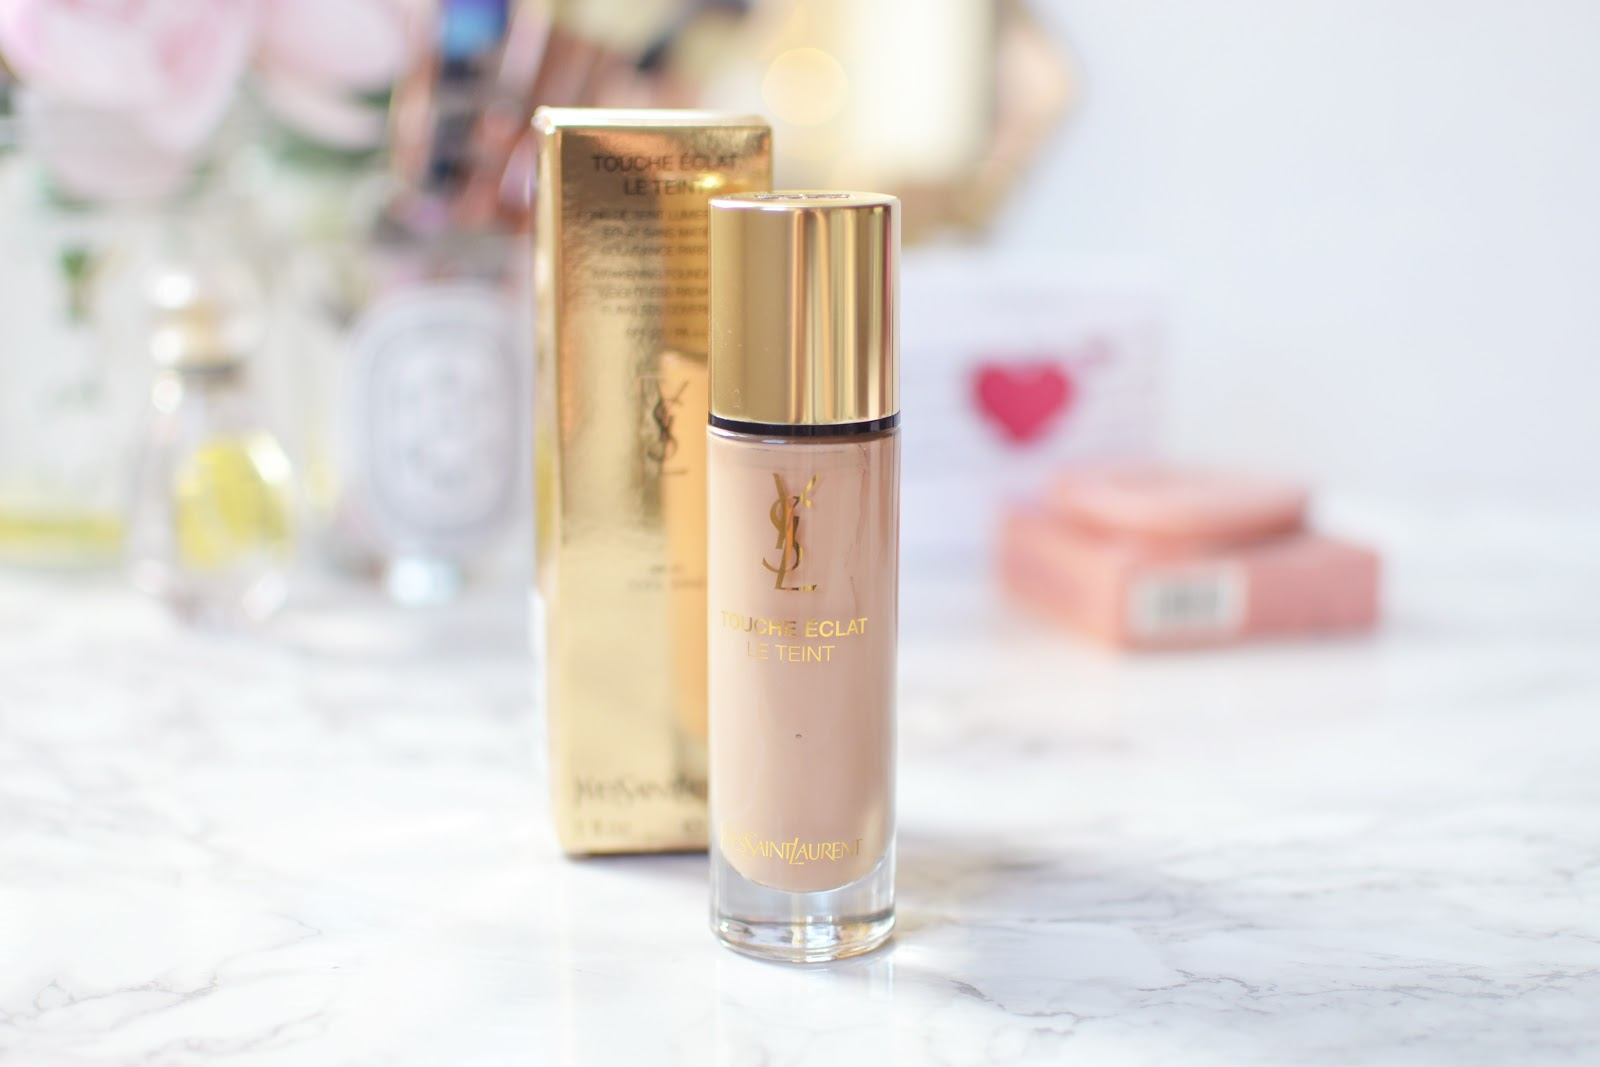 YSL Beauty Touche Éclat La Teint Foundation